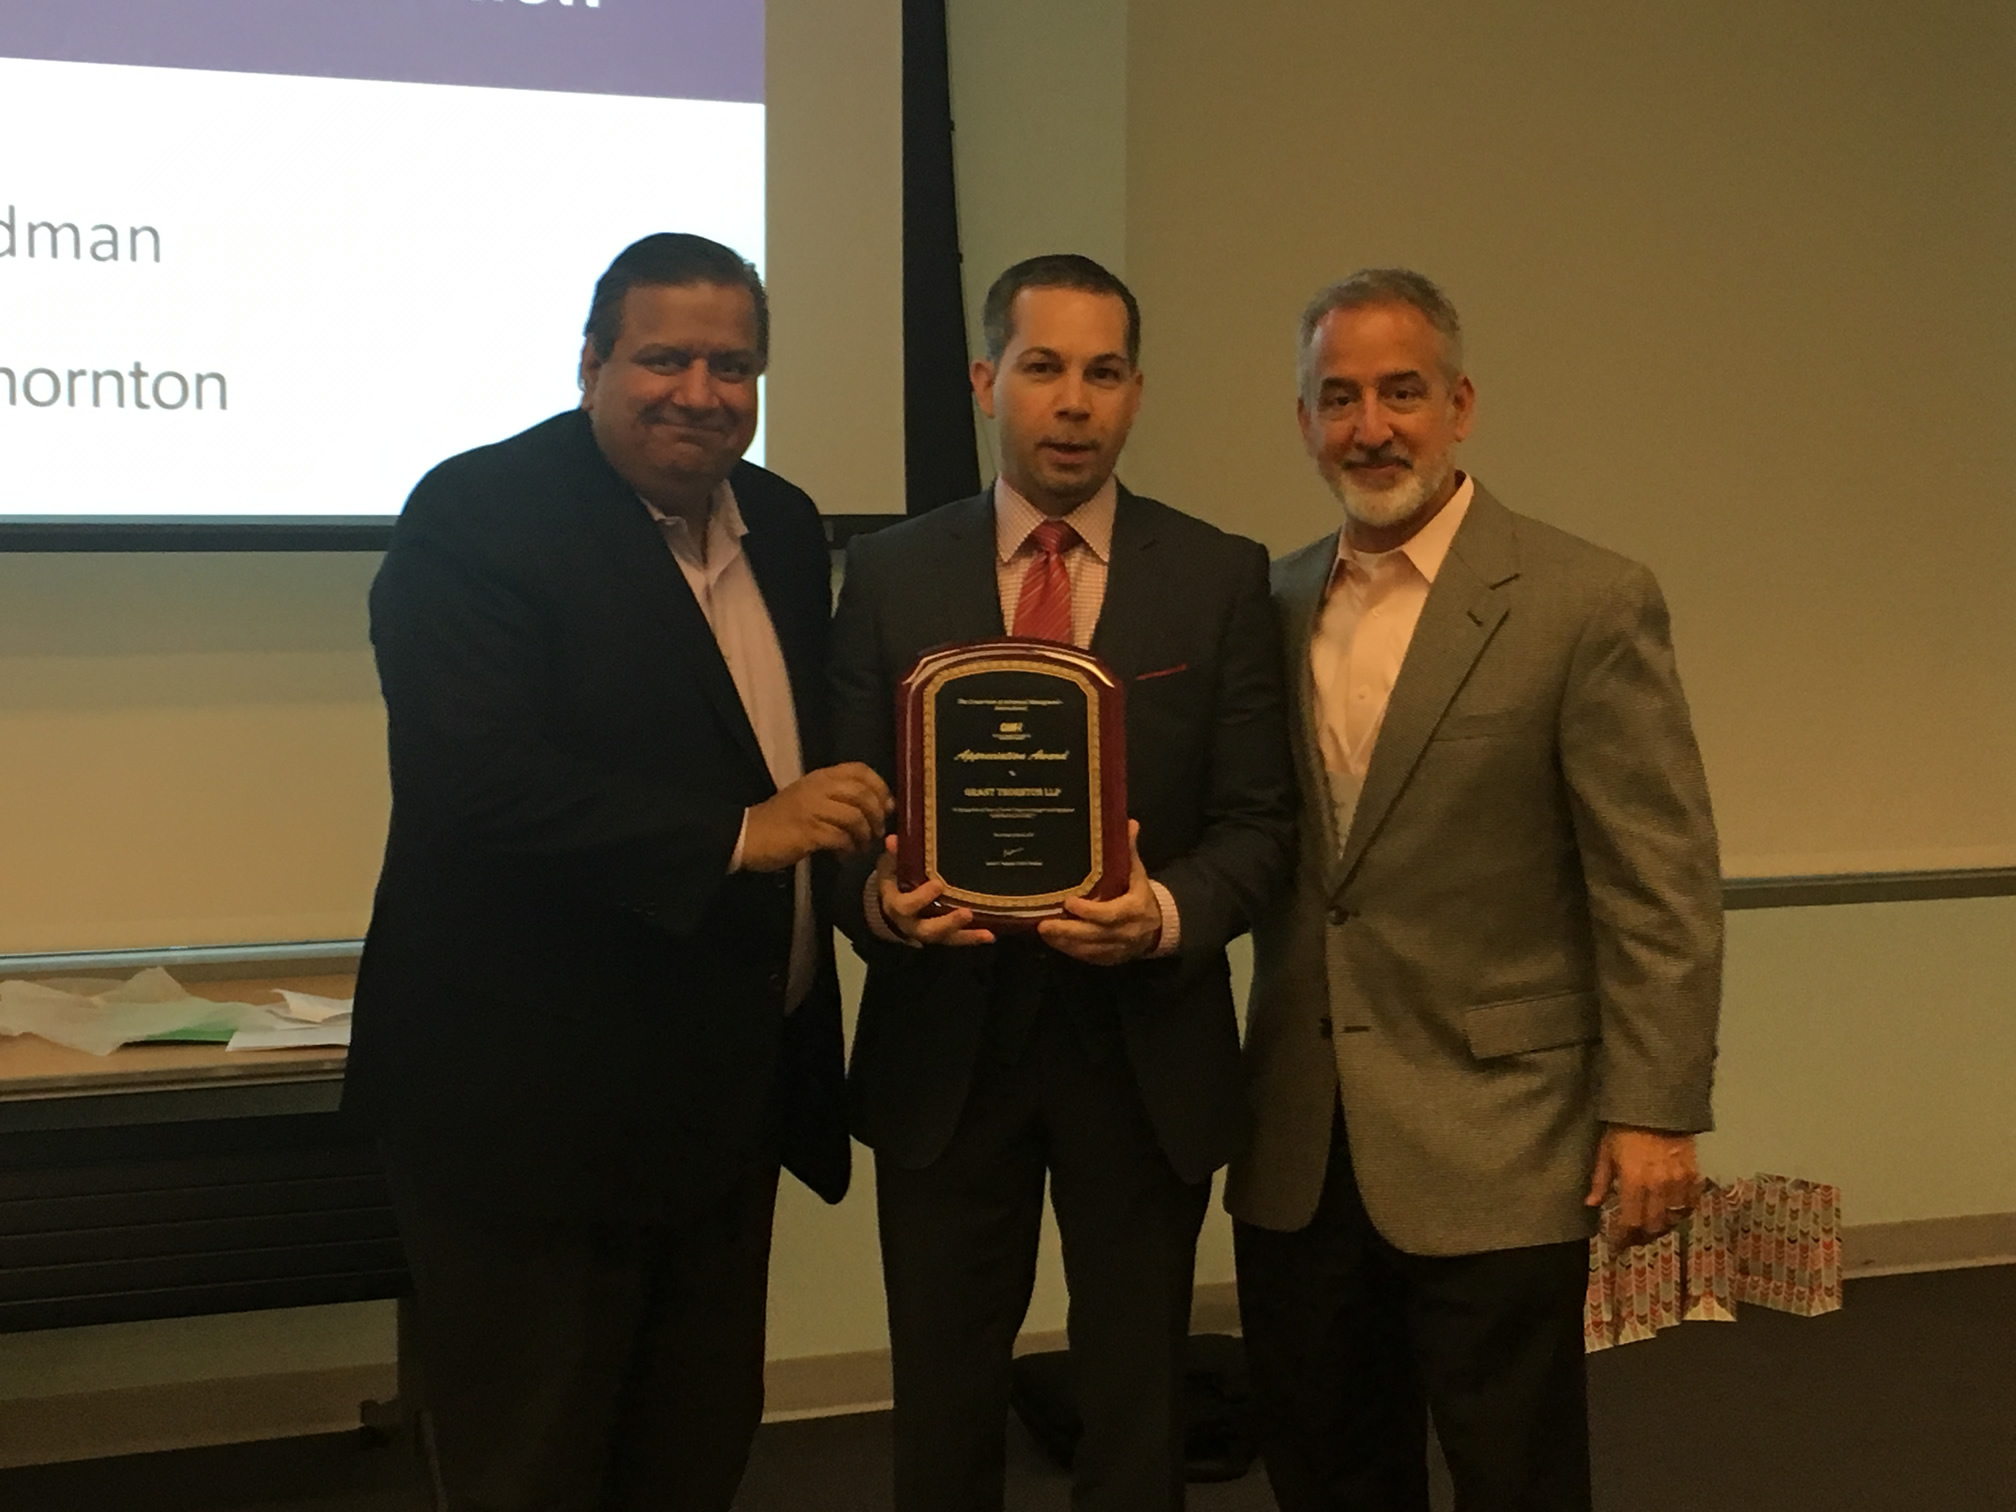 Anthony Scardino (USPTO) in the middle who presented the award to Srikant Sastry (Grant Thornton LLP) on the left with Carlos A. Otal (Grant Thornton LLP) on the right.